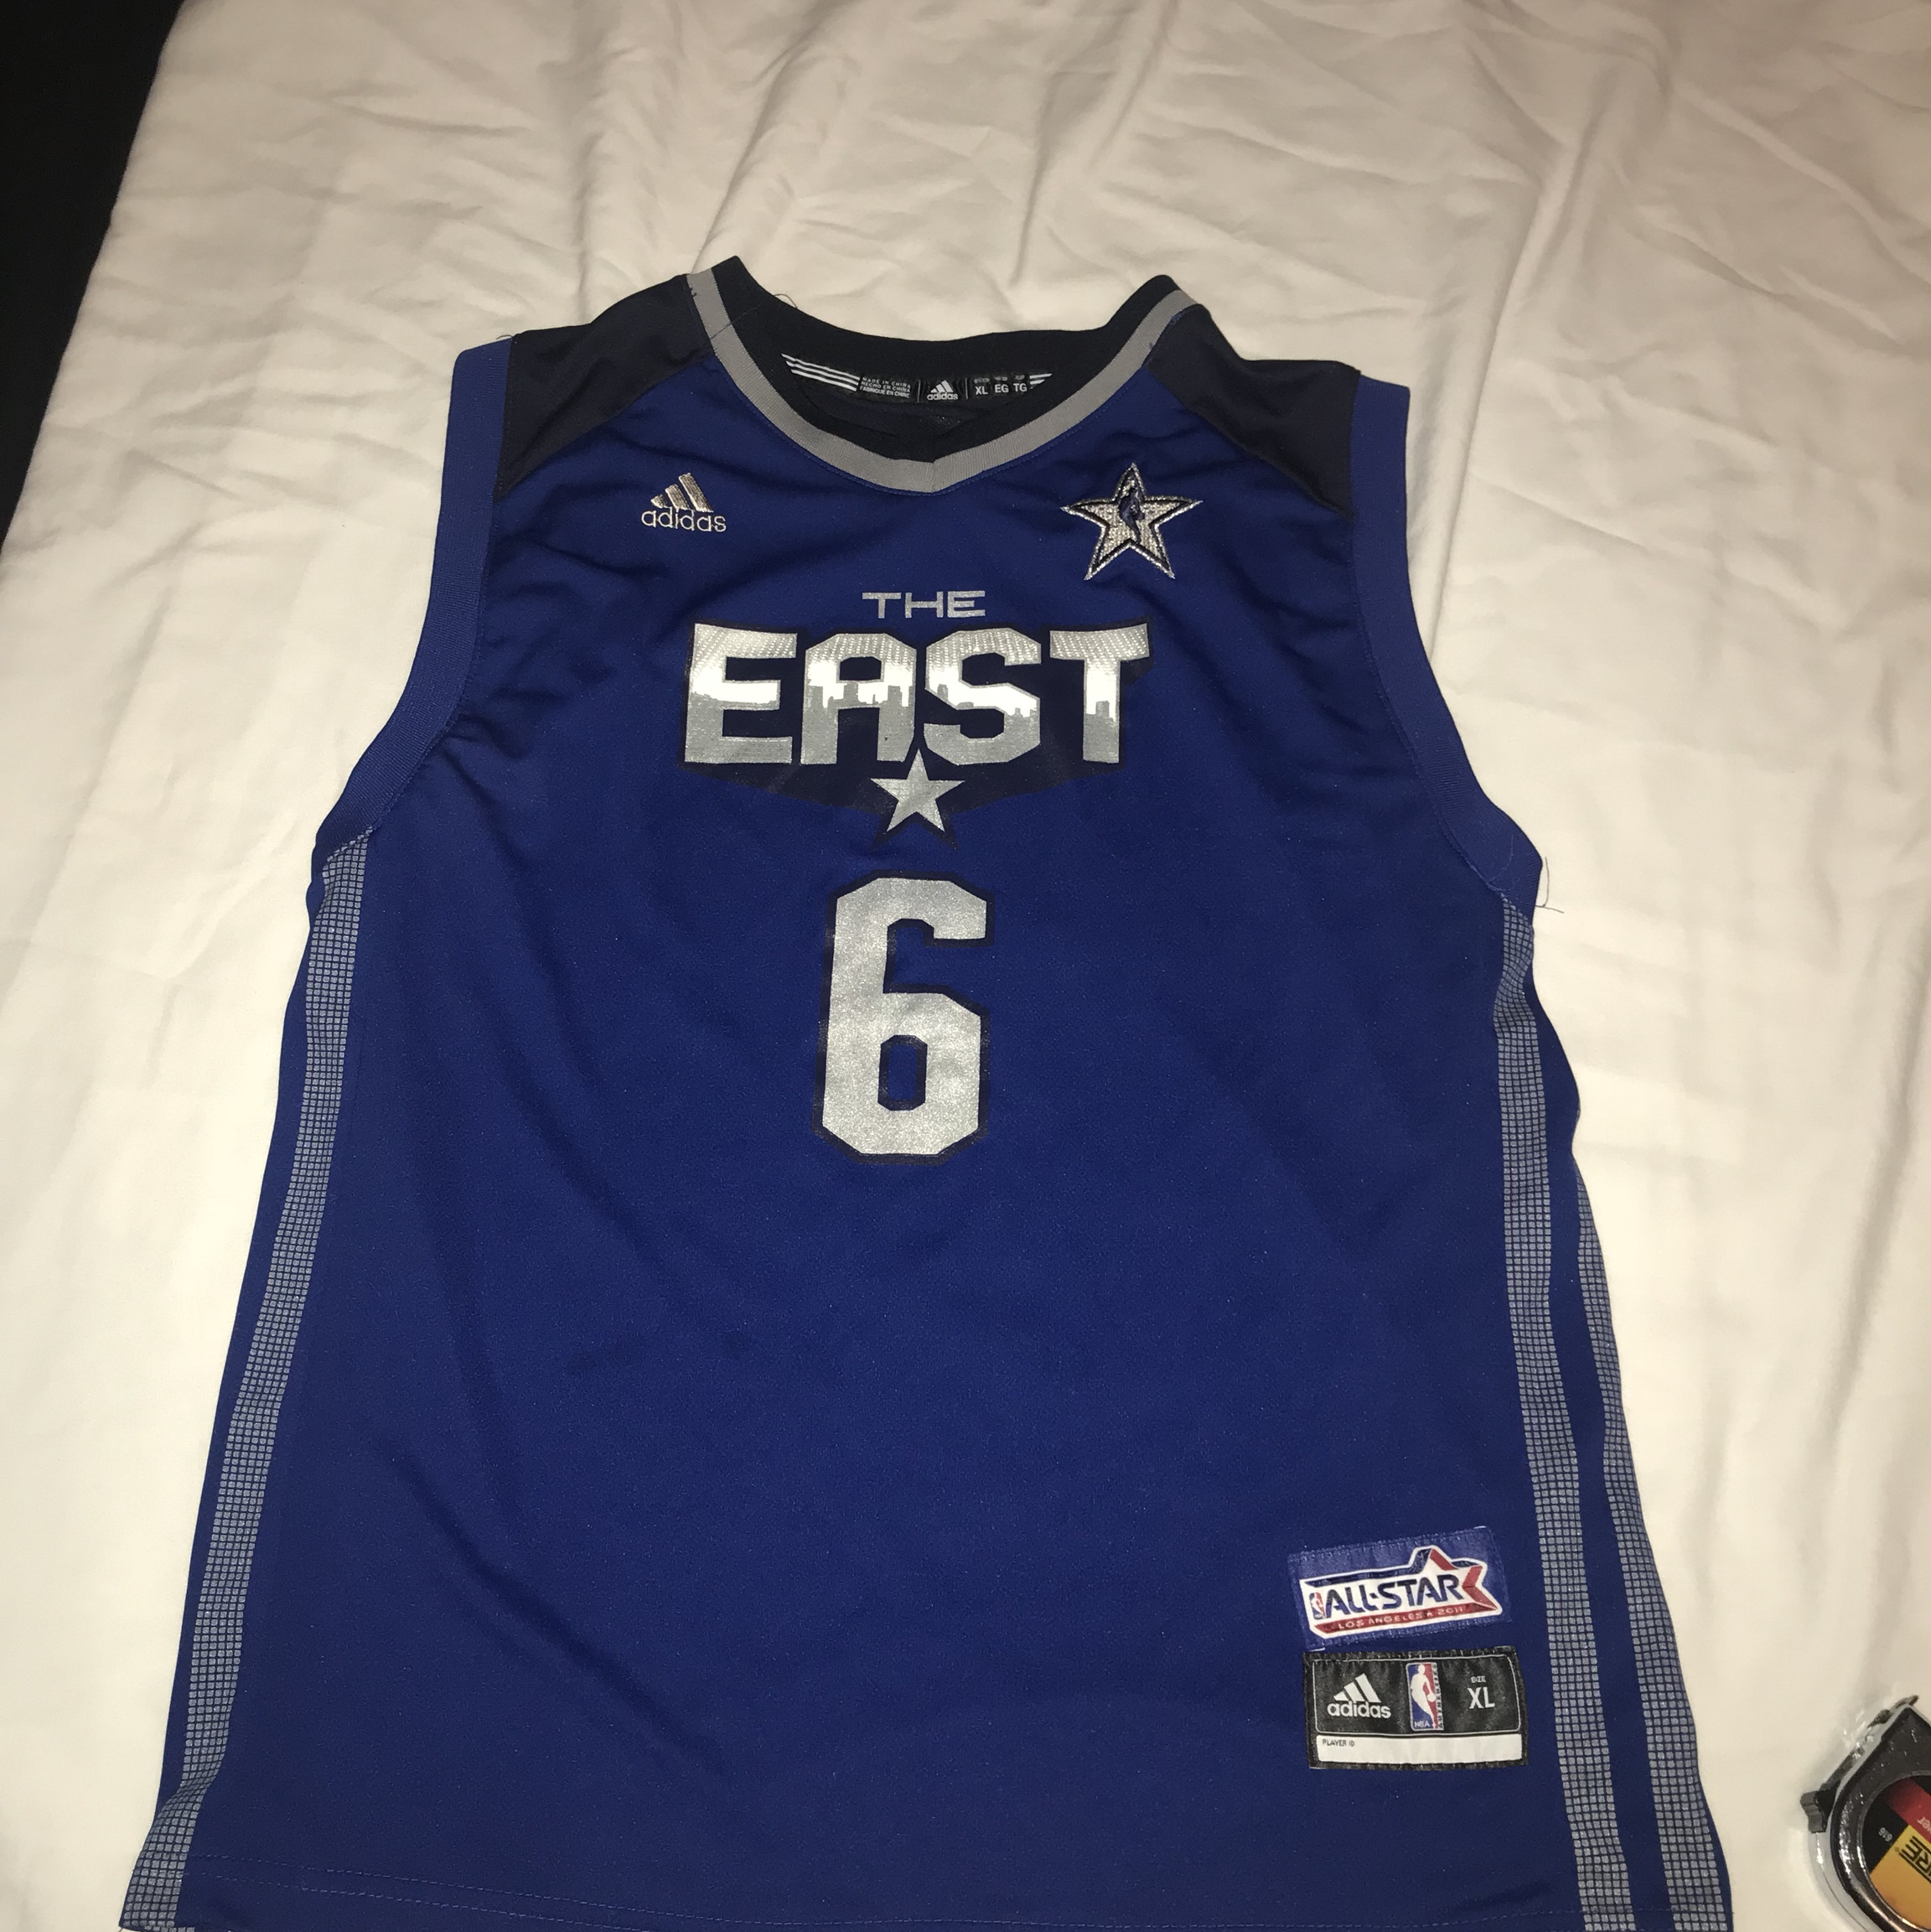 huge discount e78f9 94d20 NBA all star game Lebron James jersey 2011 youth xl... - Depop